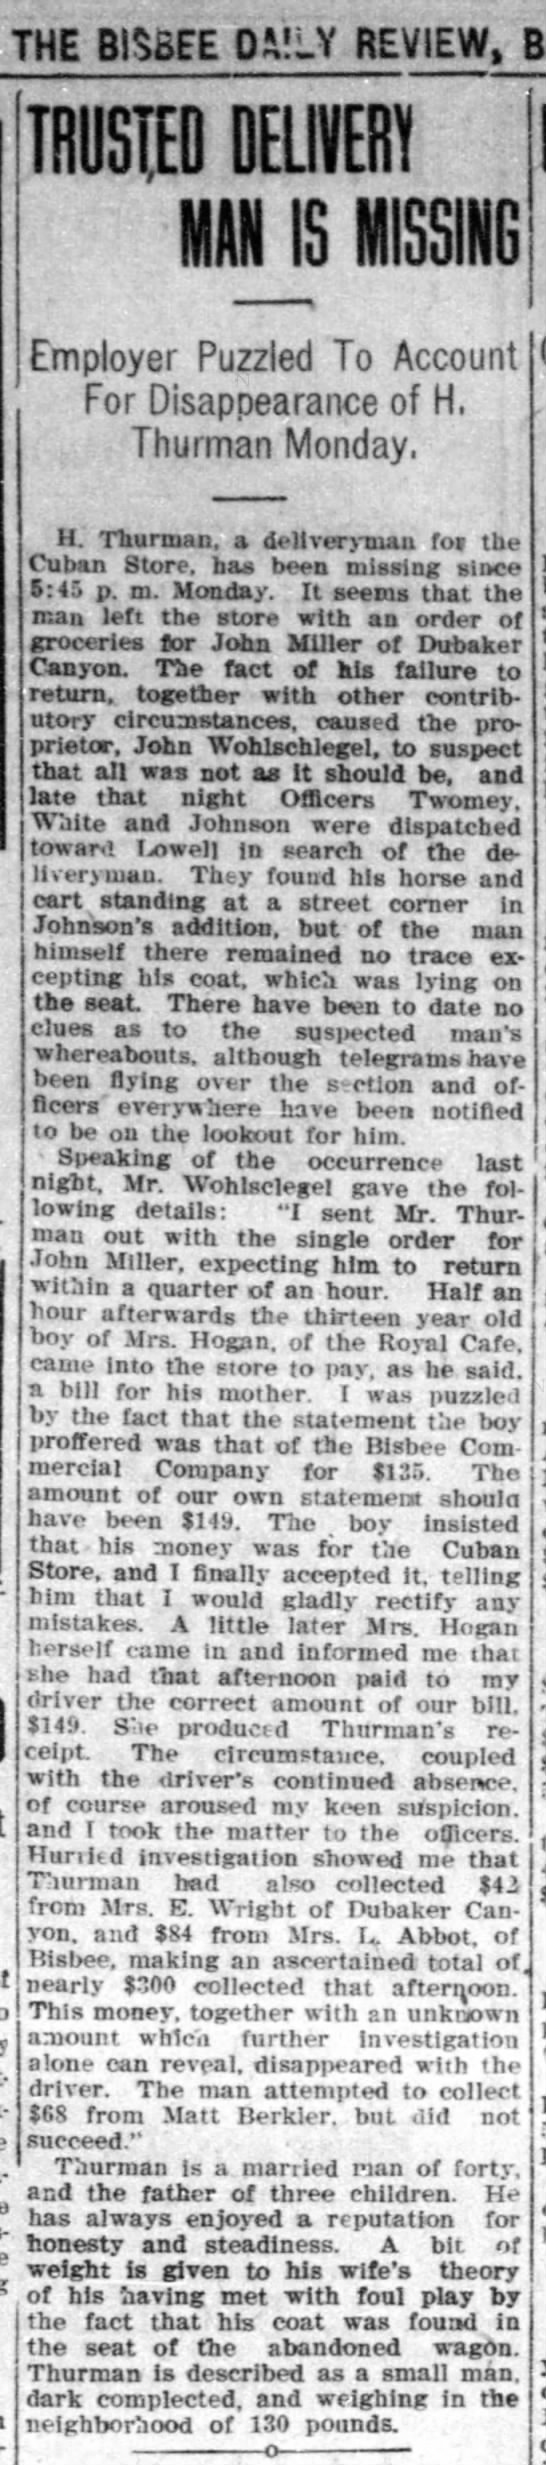 Bisbee Daily Review, 14 October 1908, page 5 - f HE BISBEE DAILY REVIEW, TRUSSED DELIVERY IS...